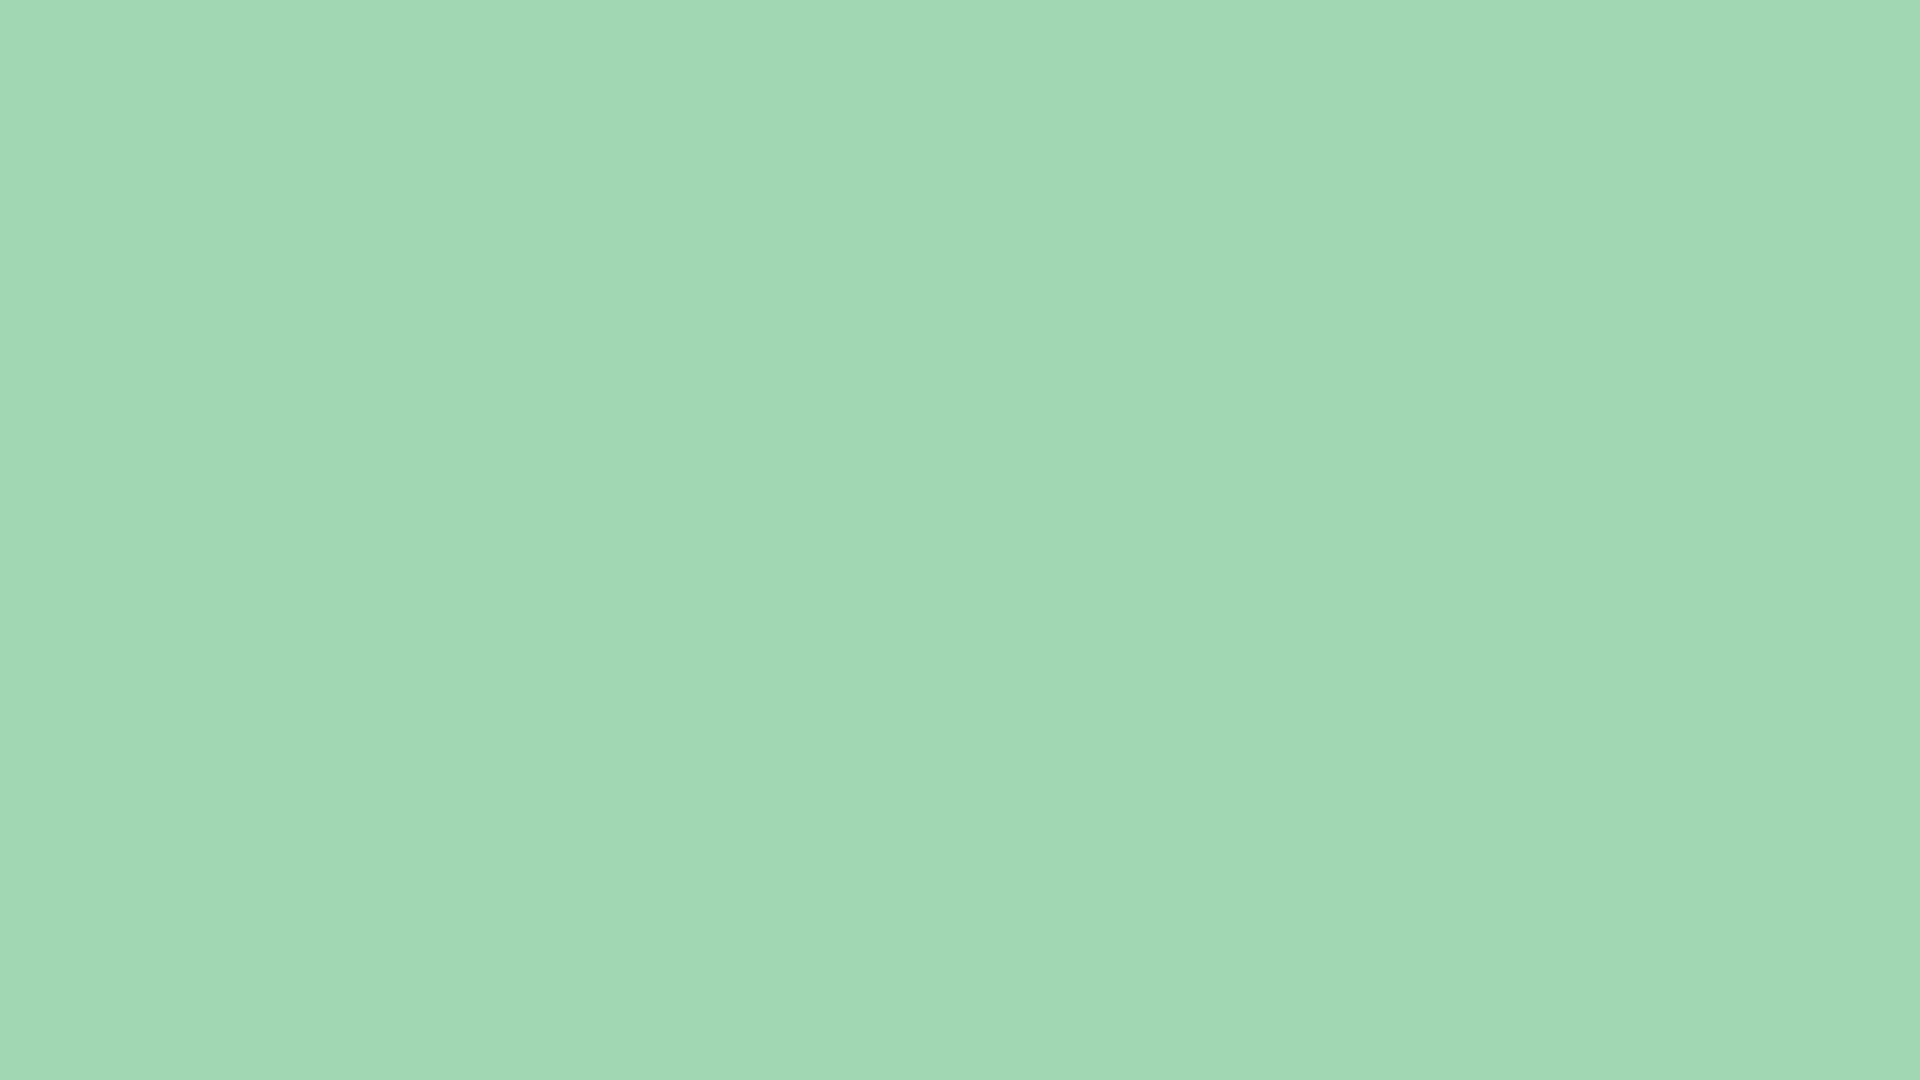 1920x1080 Turquoise Green Solid Color Background